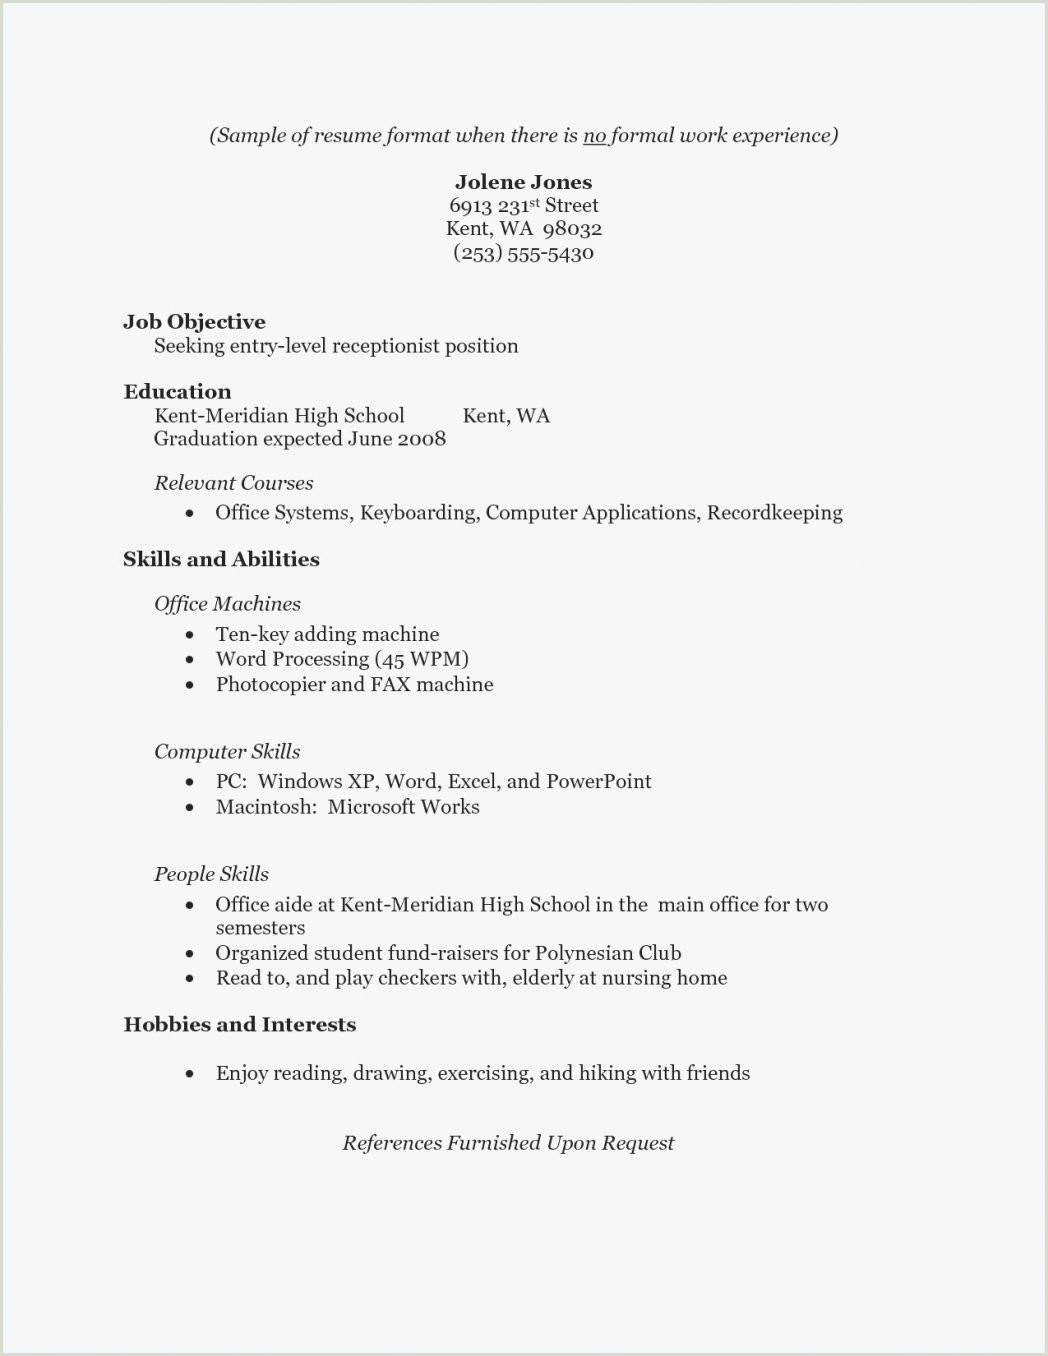 Wpm On Resume Example Resume for Receptionist with No Experience Unique Nanny